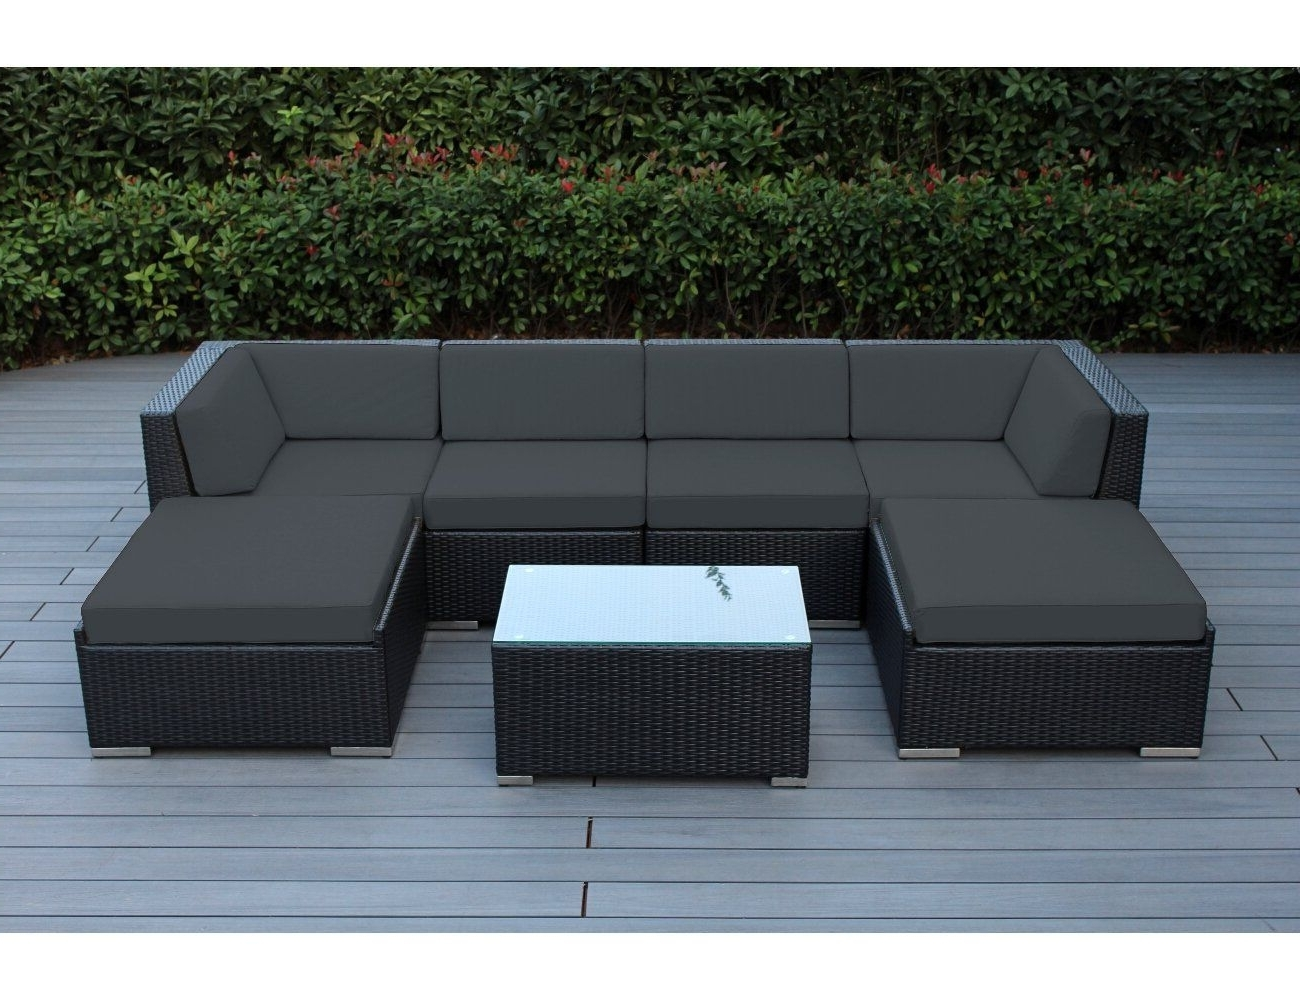 Well Known Conversation Patio Sets With Outdoor Sectionals Within Ohana 7 Piece Outdoor Patio Furniture Sectional Conversation Set (View 15 of 15)